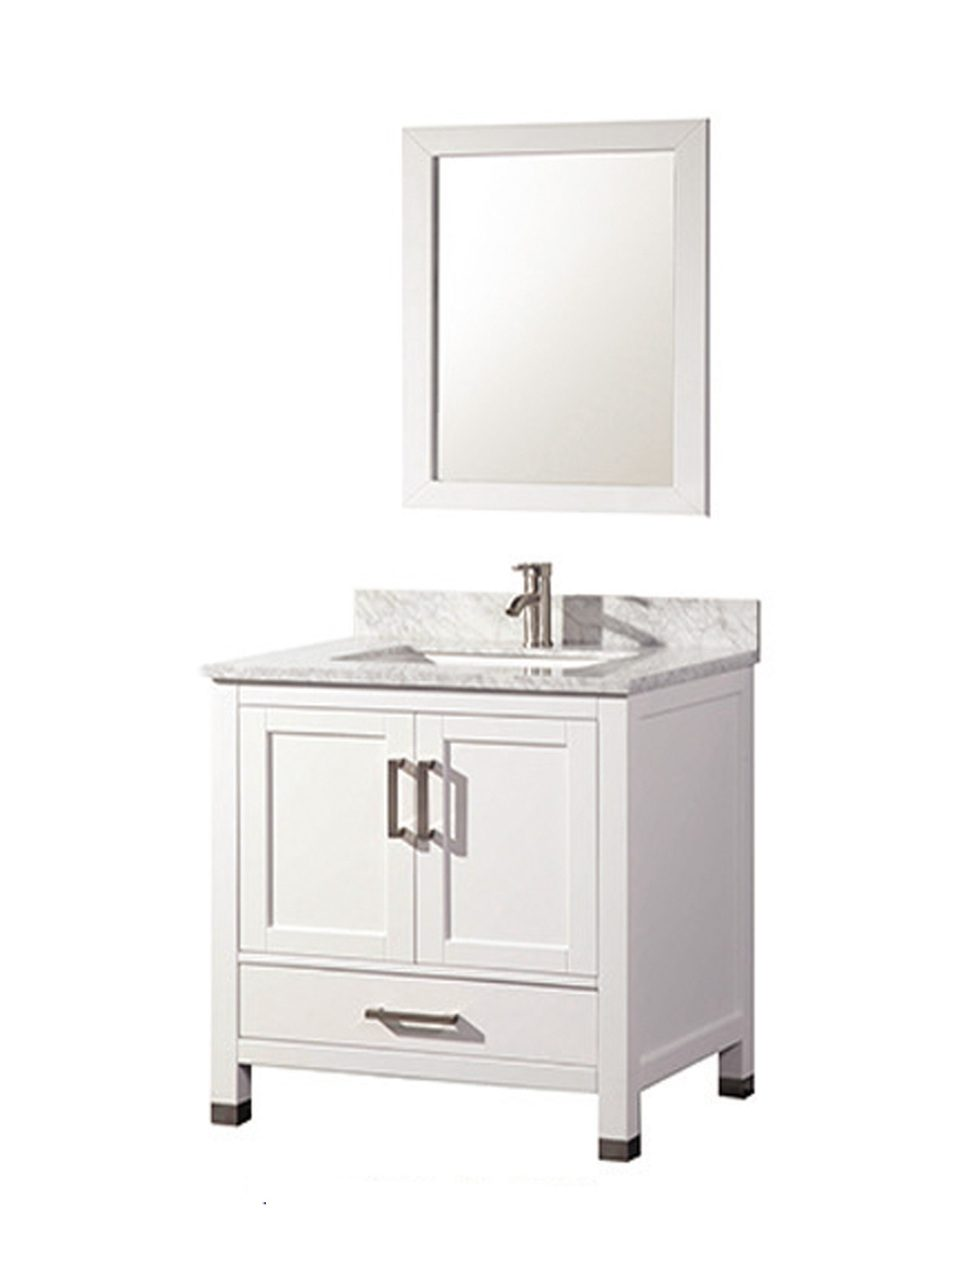 Acer 30 Inch Solid Wood White Bathroom Vanity Solid Oak Wood Cabinetry